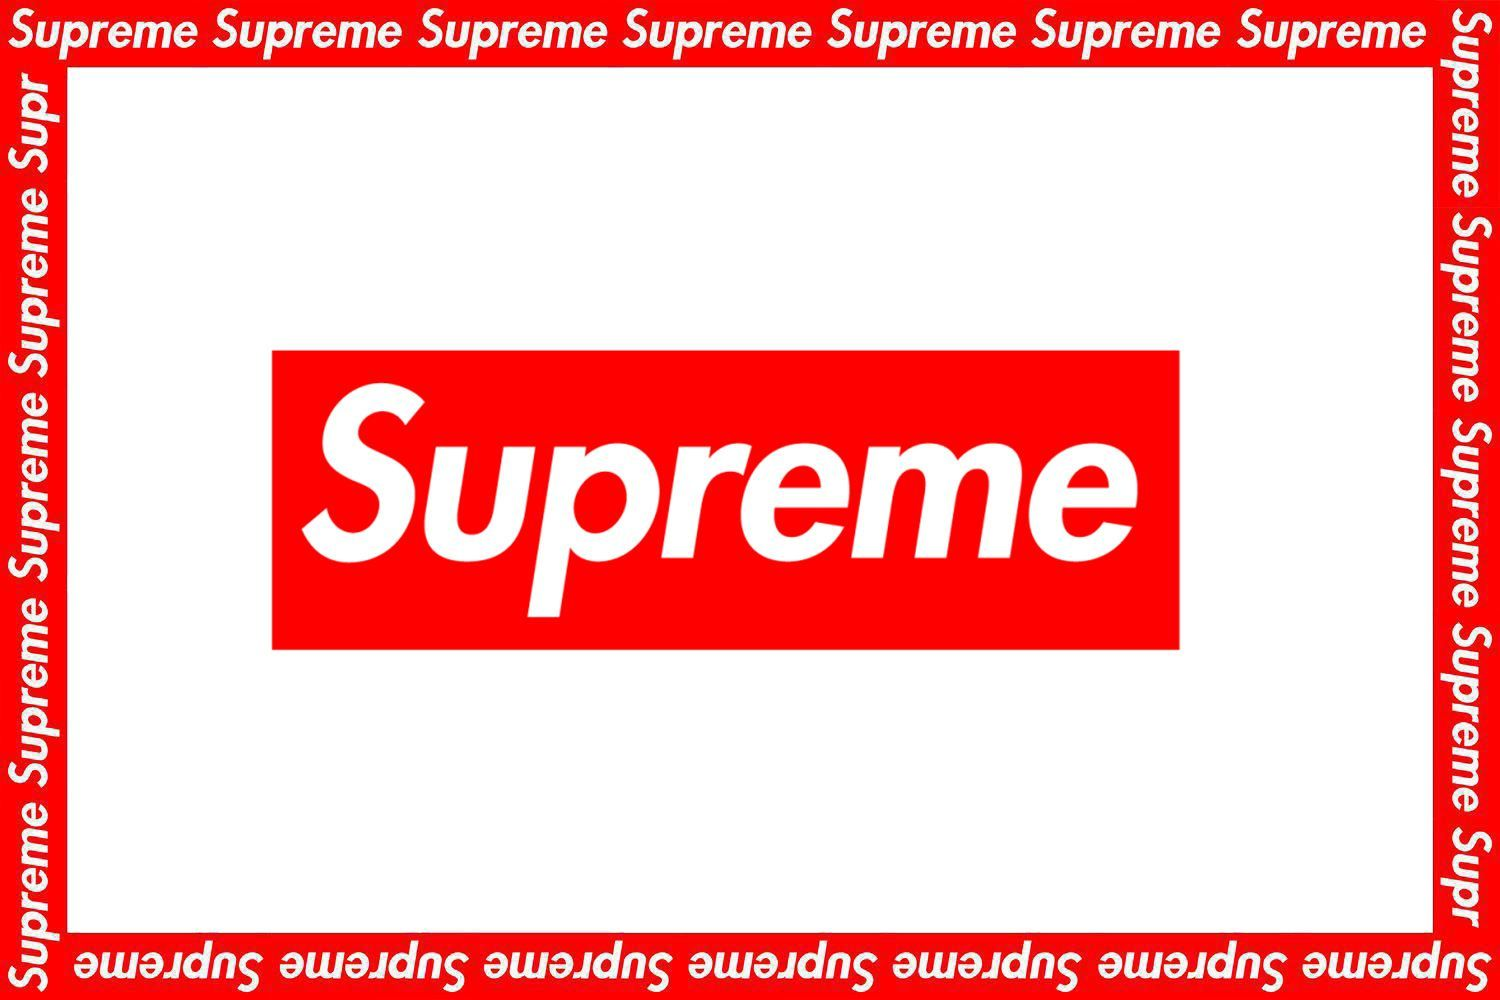 Supreme Logo - The troubled history of Supreme's boxlogo trademark registration